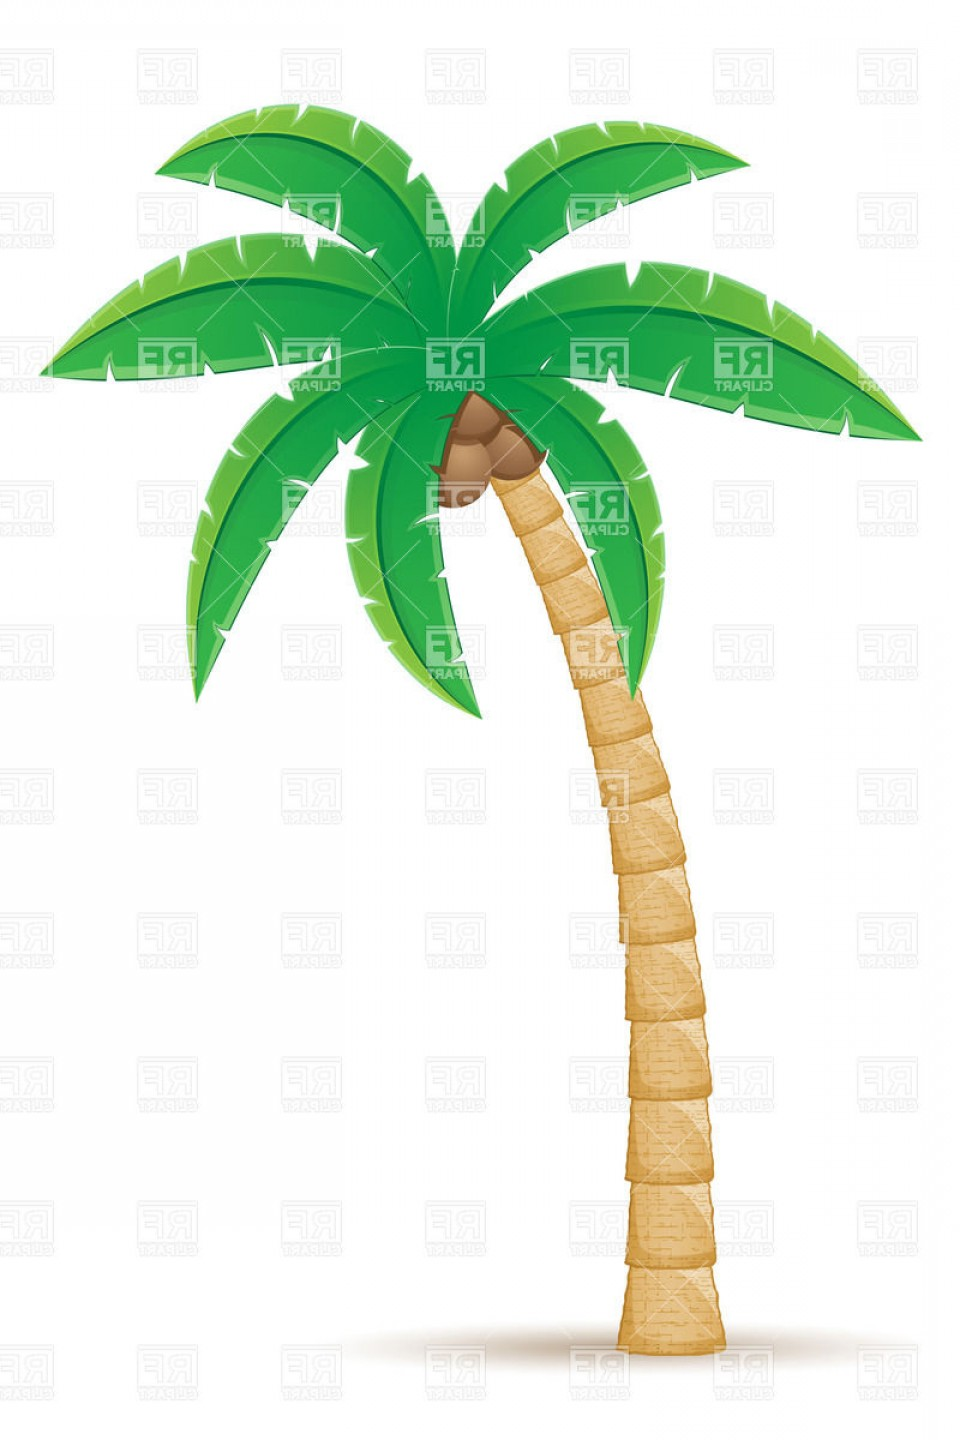 Palm Tree Clip Art Vector: Tropical Coconut Palm Tree Isolated On White Background Vector Clipart